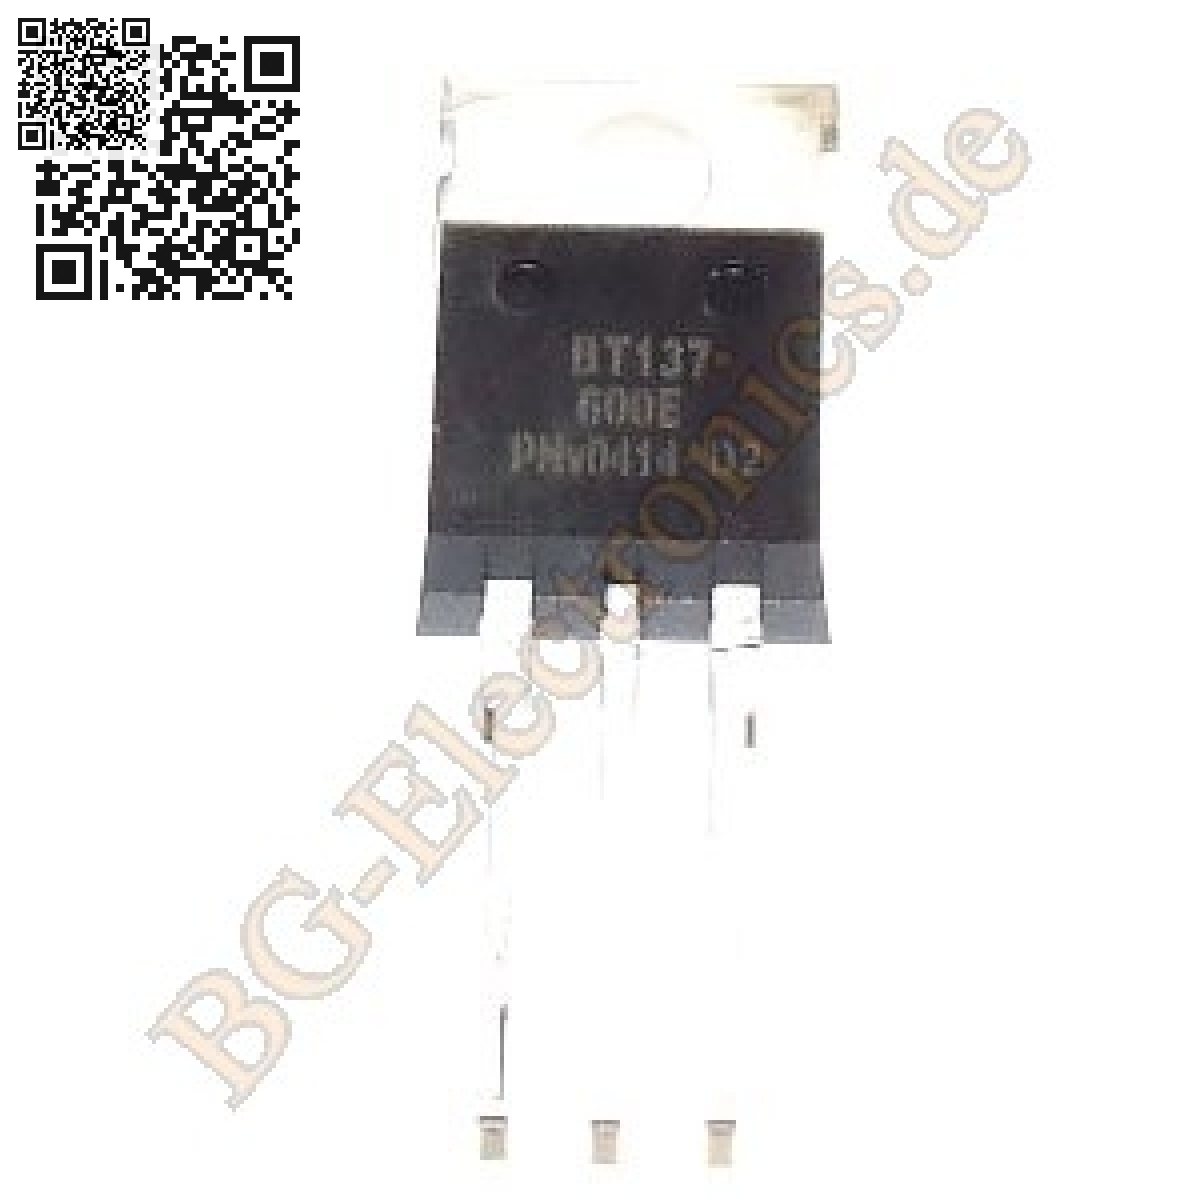 2-x-BT137-600E-TRIAC-BT137600E-Philips-TO-220-2pcs